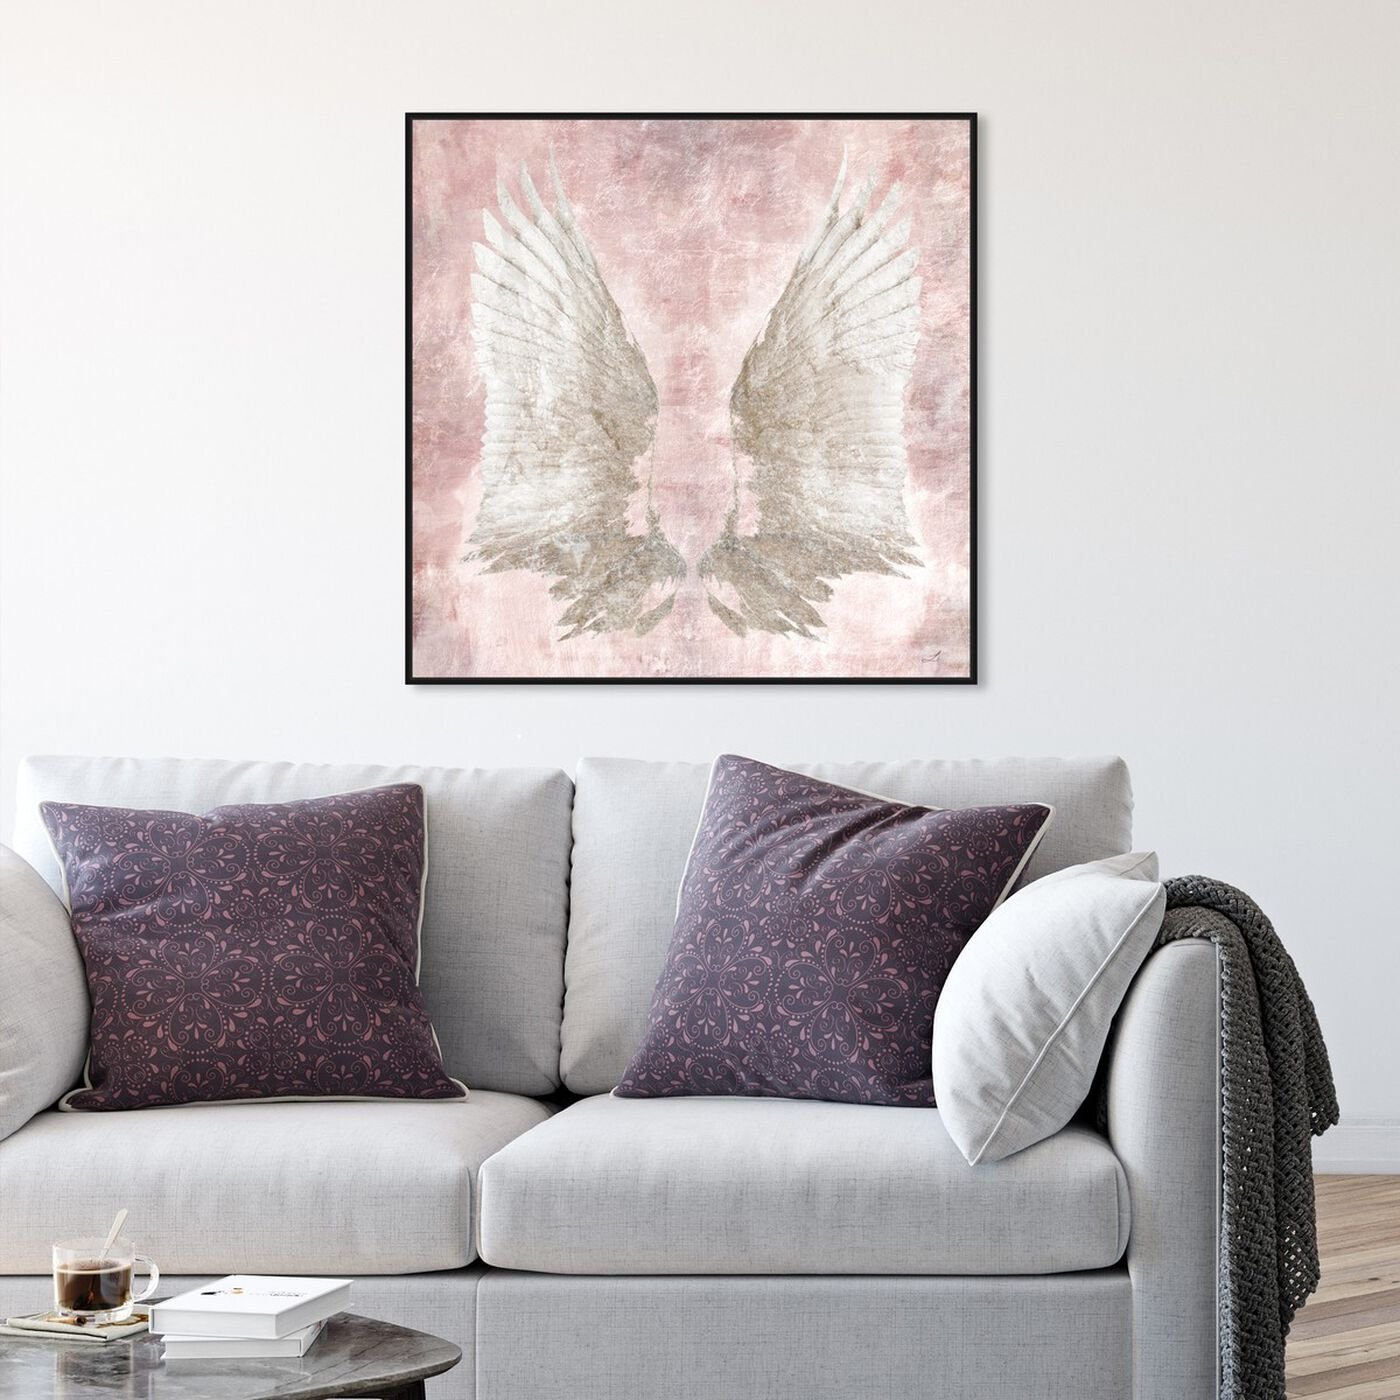 Hanging view of Chie's Freedom Wings featuring fashion and glam and feathers art.